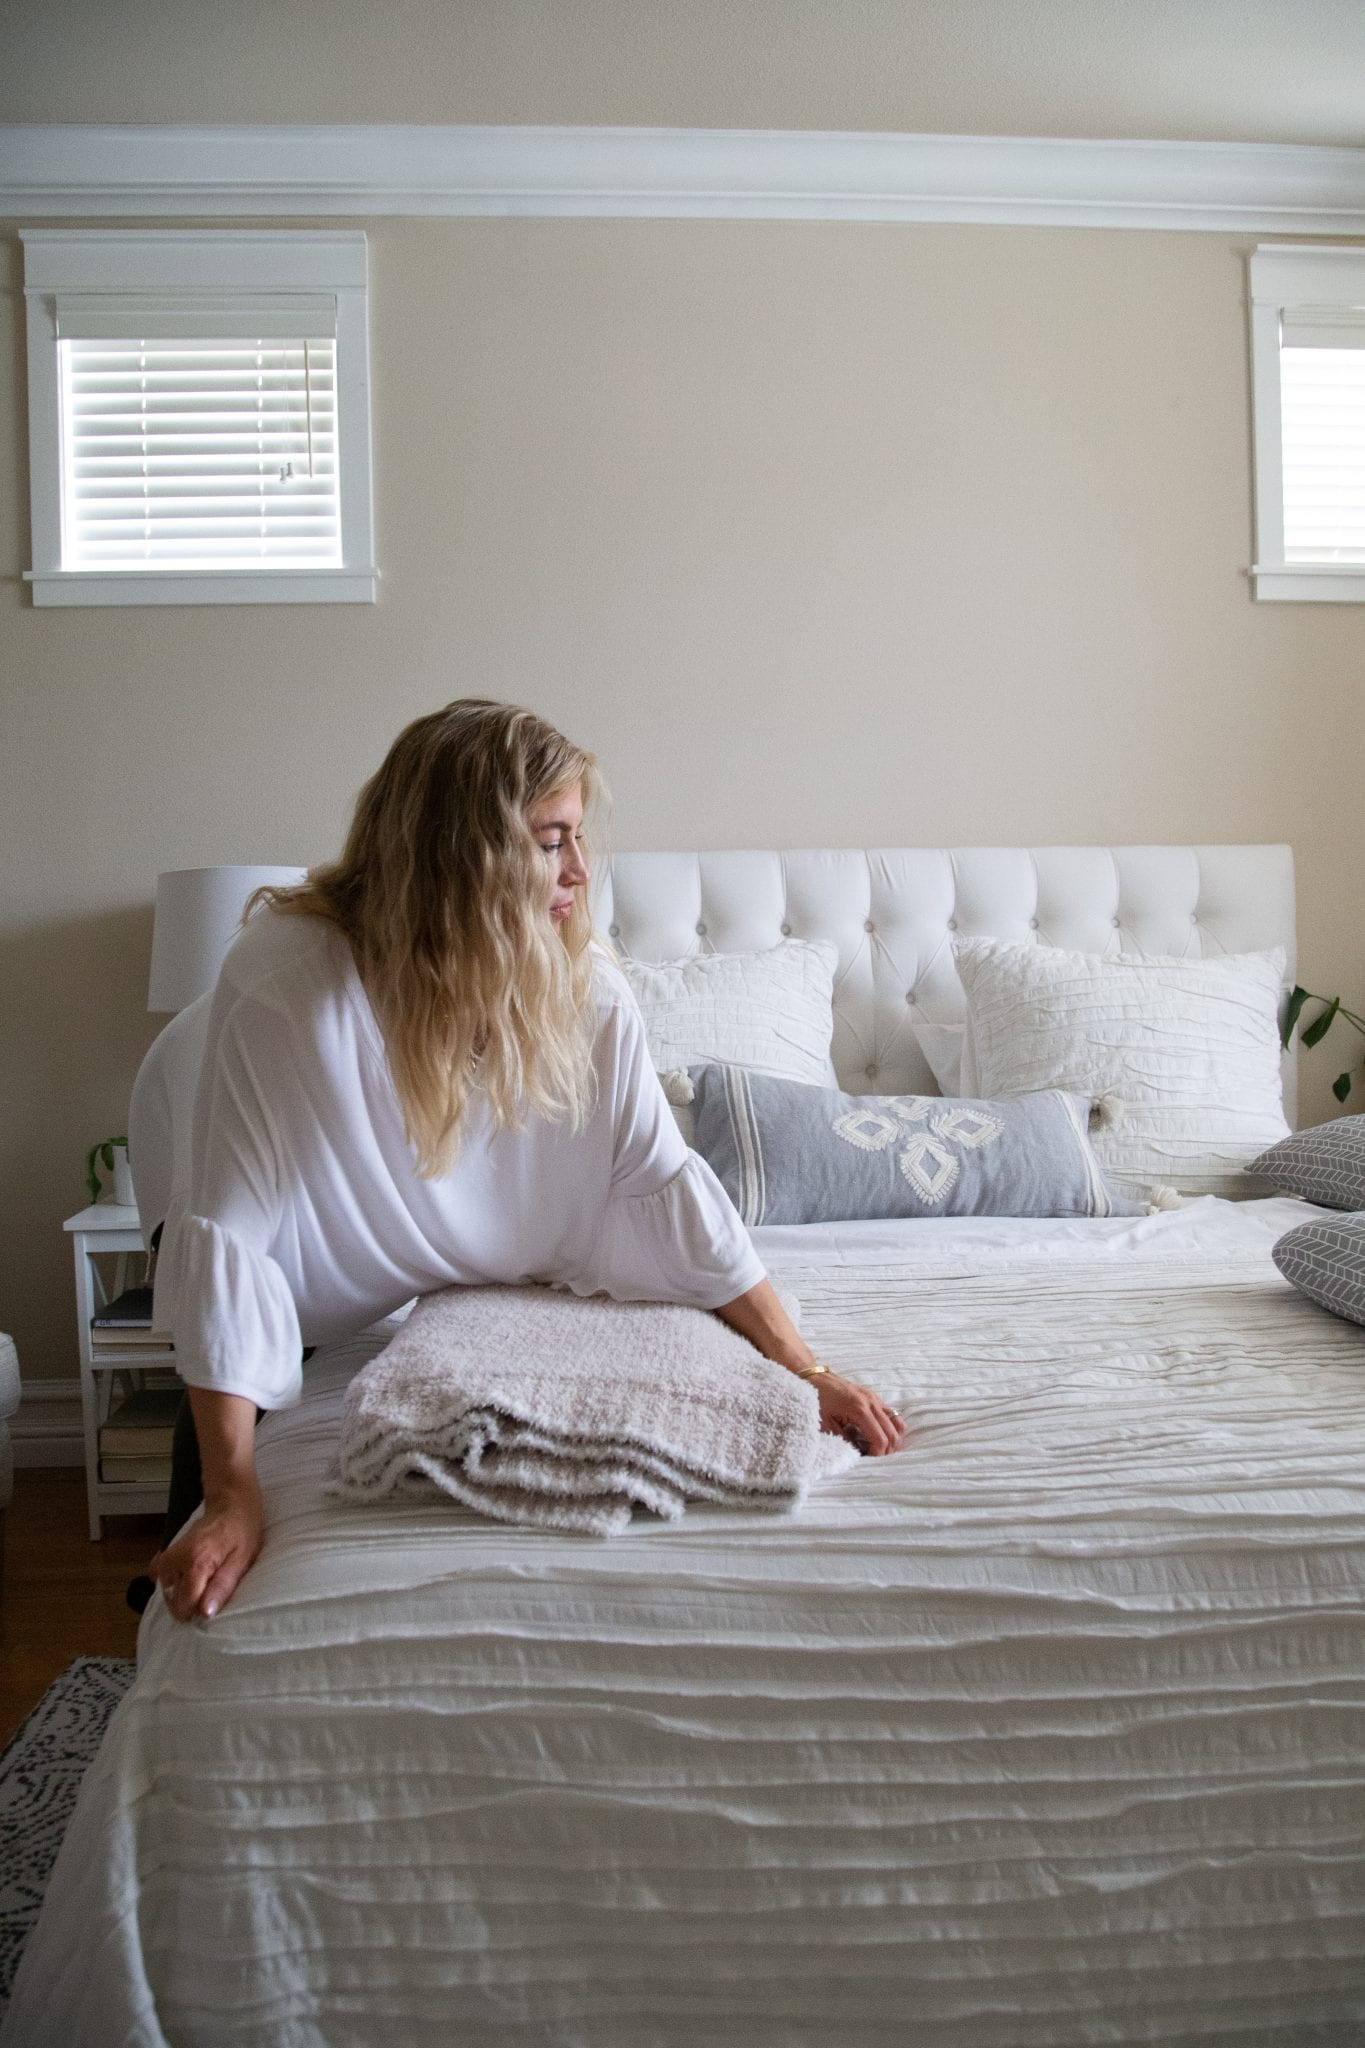 THE MATTRESS I WOULD RECOMMEND FOR A GREAT NIGHT'S SLEEP